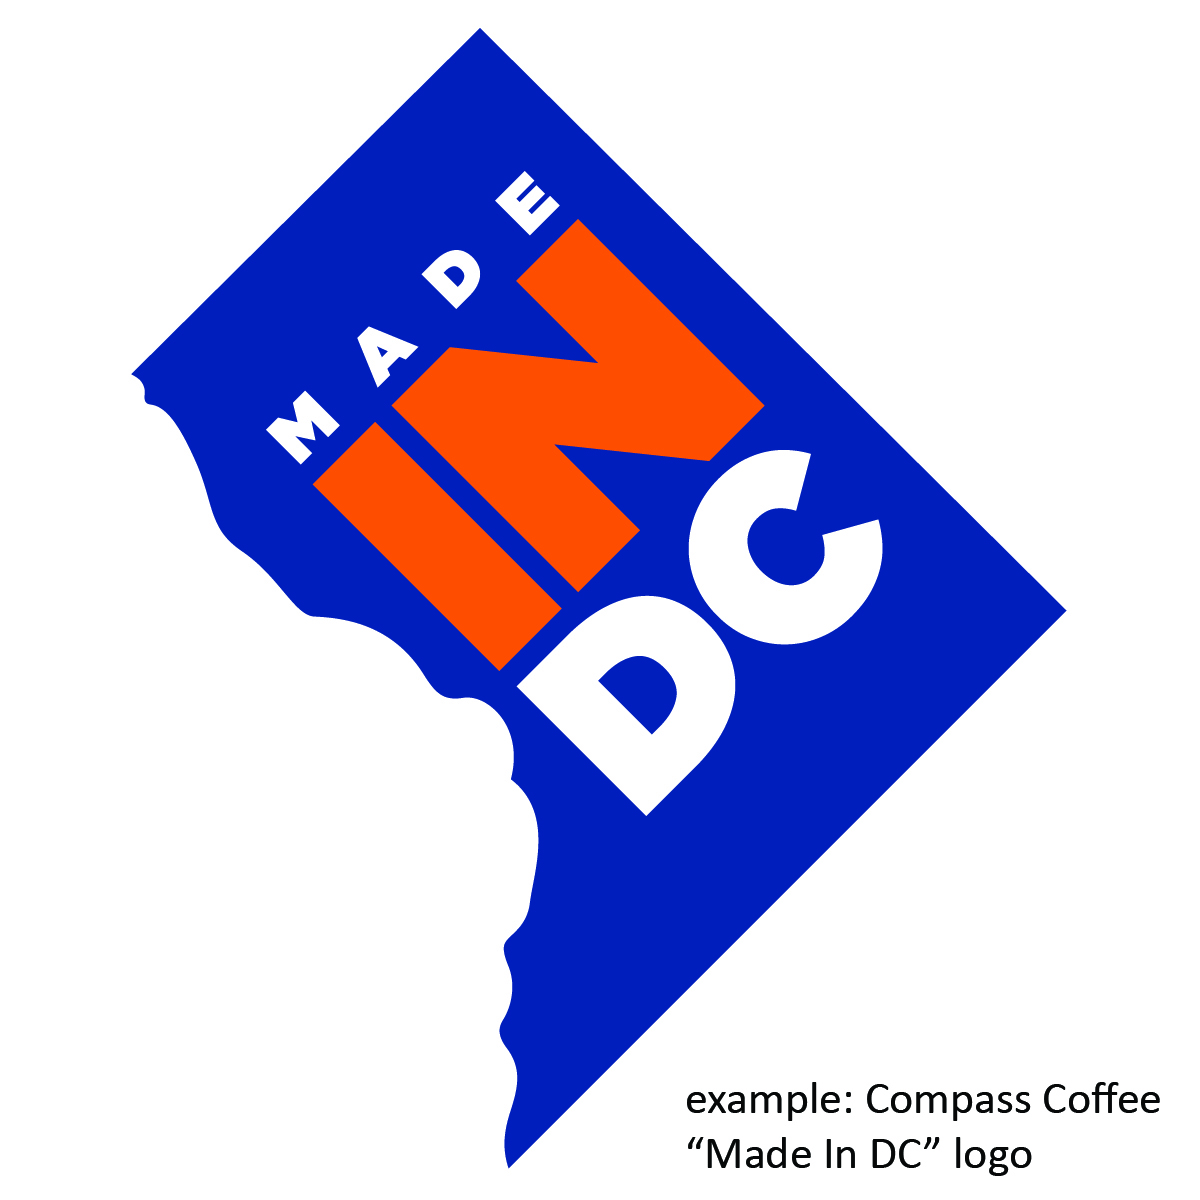 Compass_Coffee_Made_In_DC.jpg